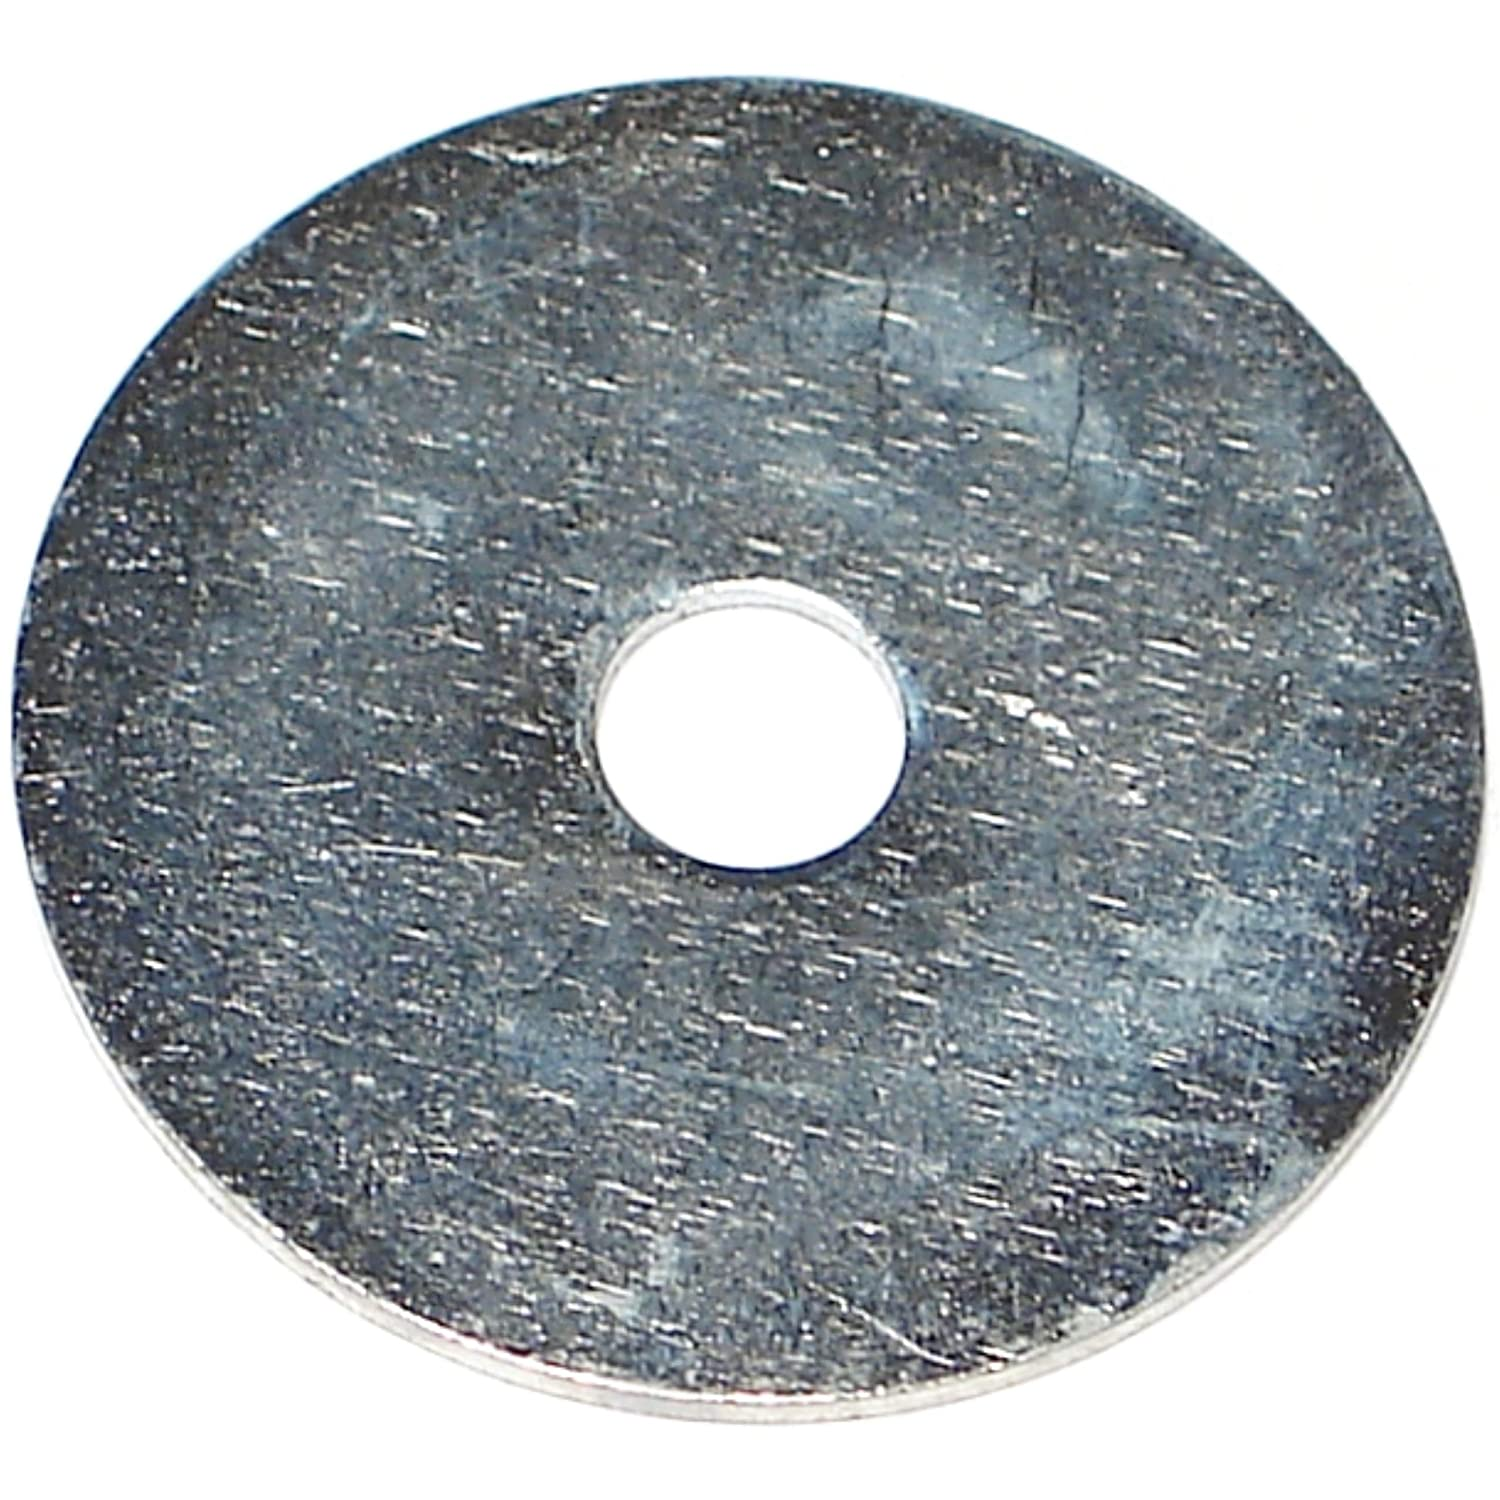 Piece-100 Hard-to-Find Fastener 014973241353 Fender Washers 5//16 x 1-5//8